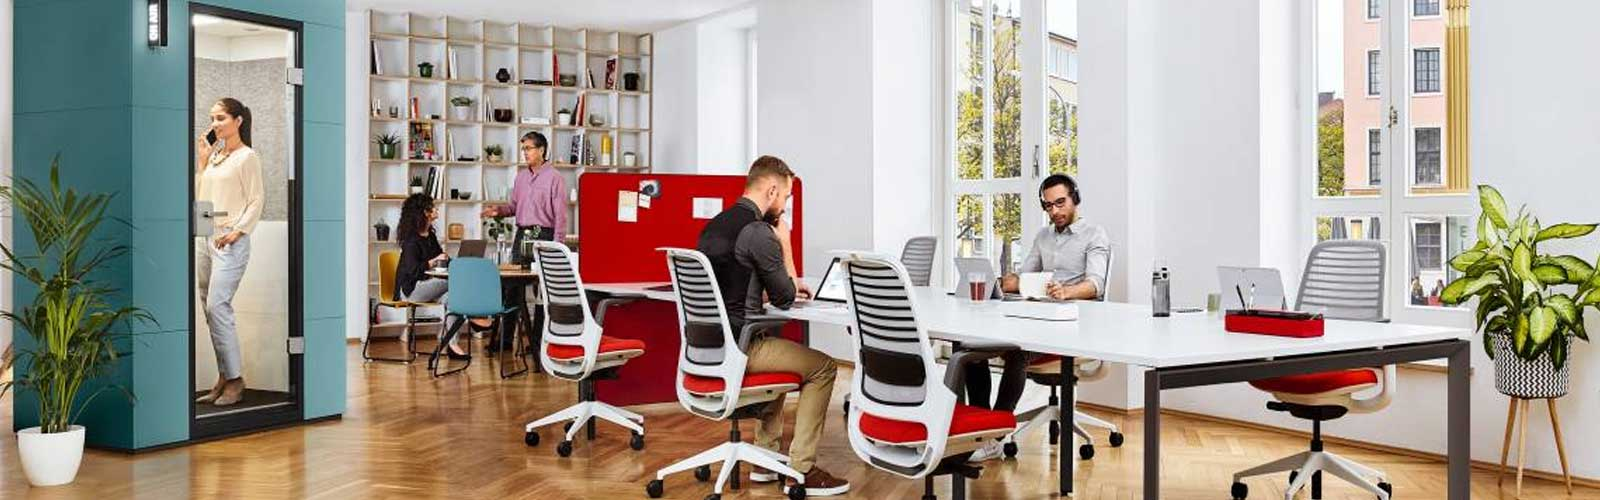 steelcase-meeting-pod